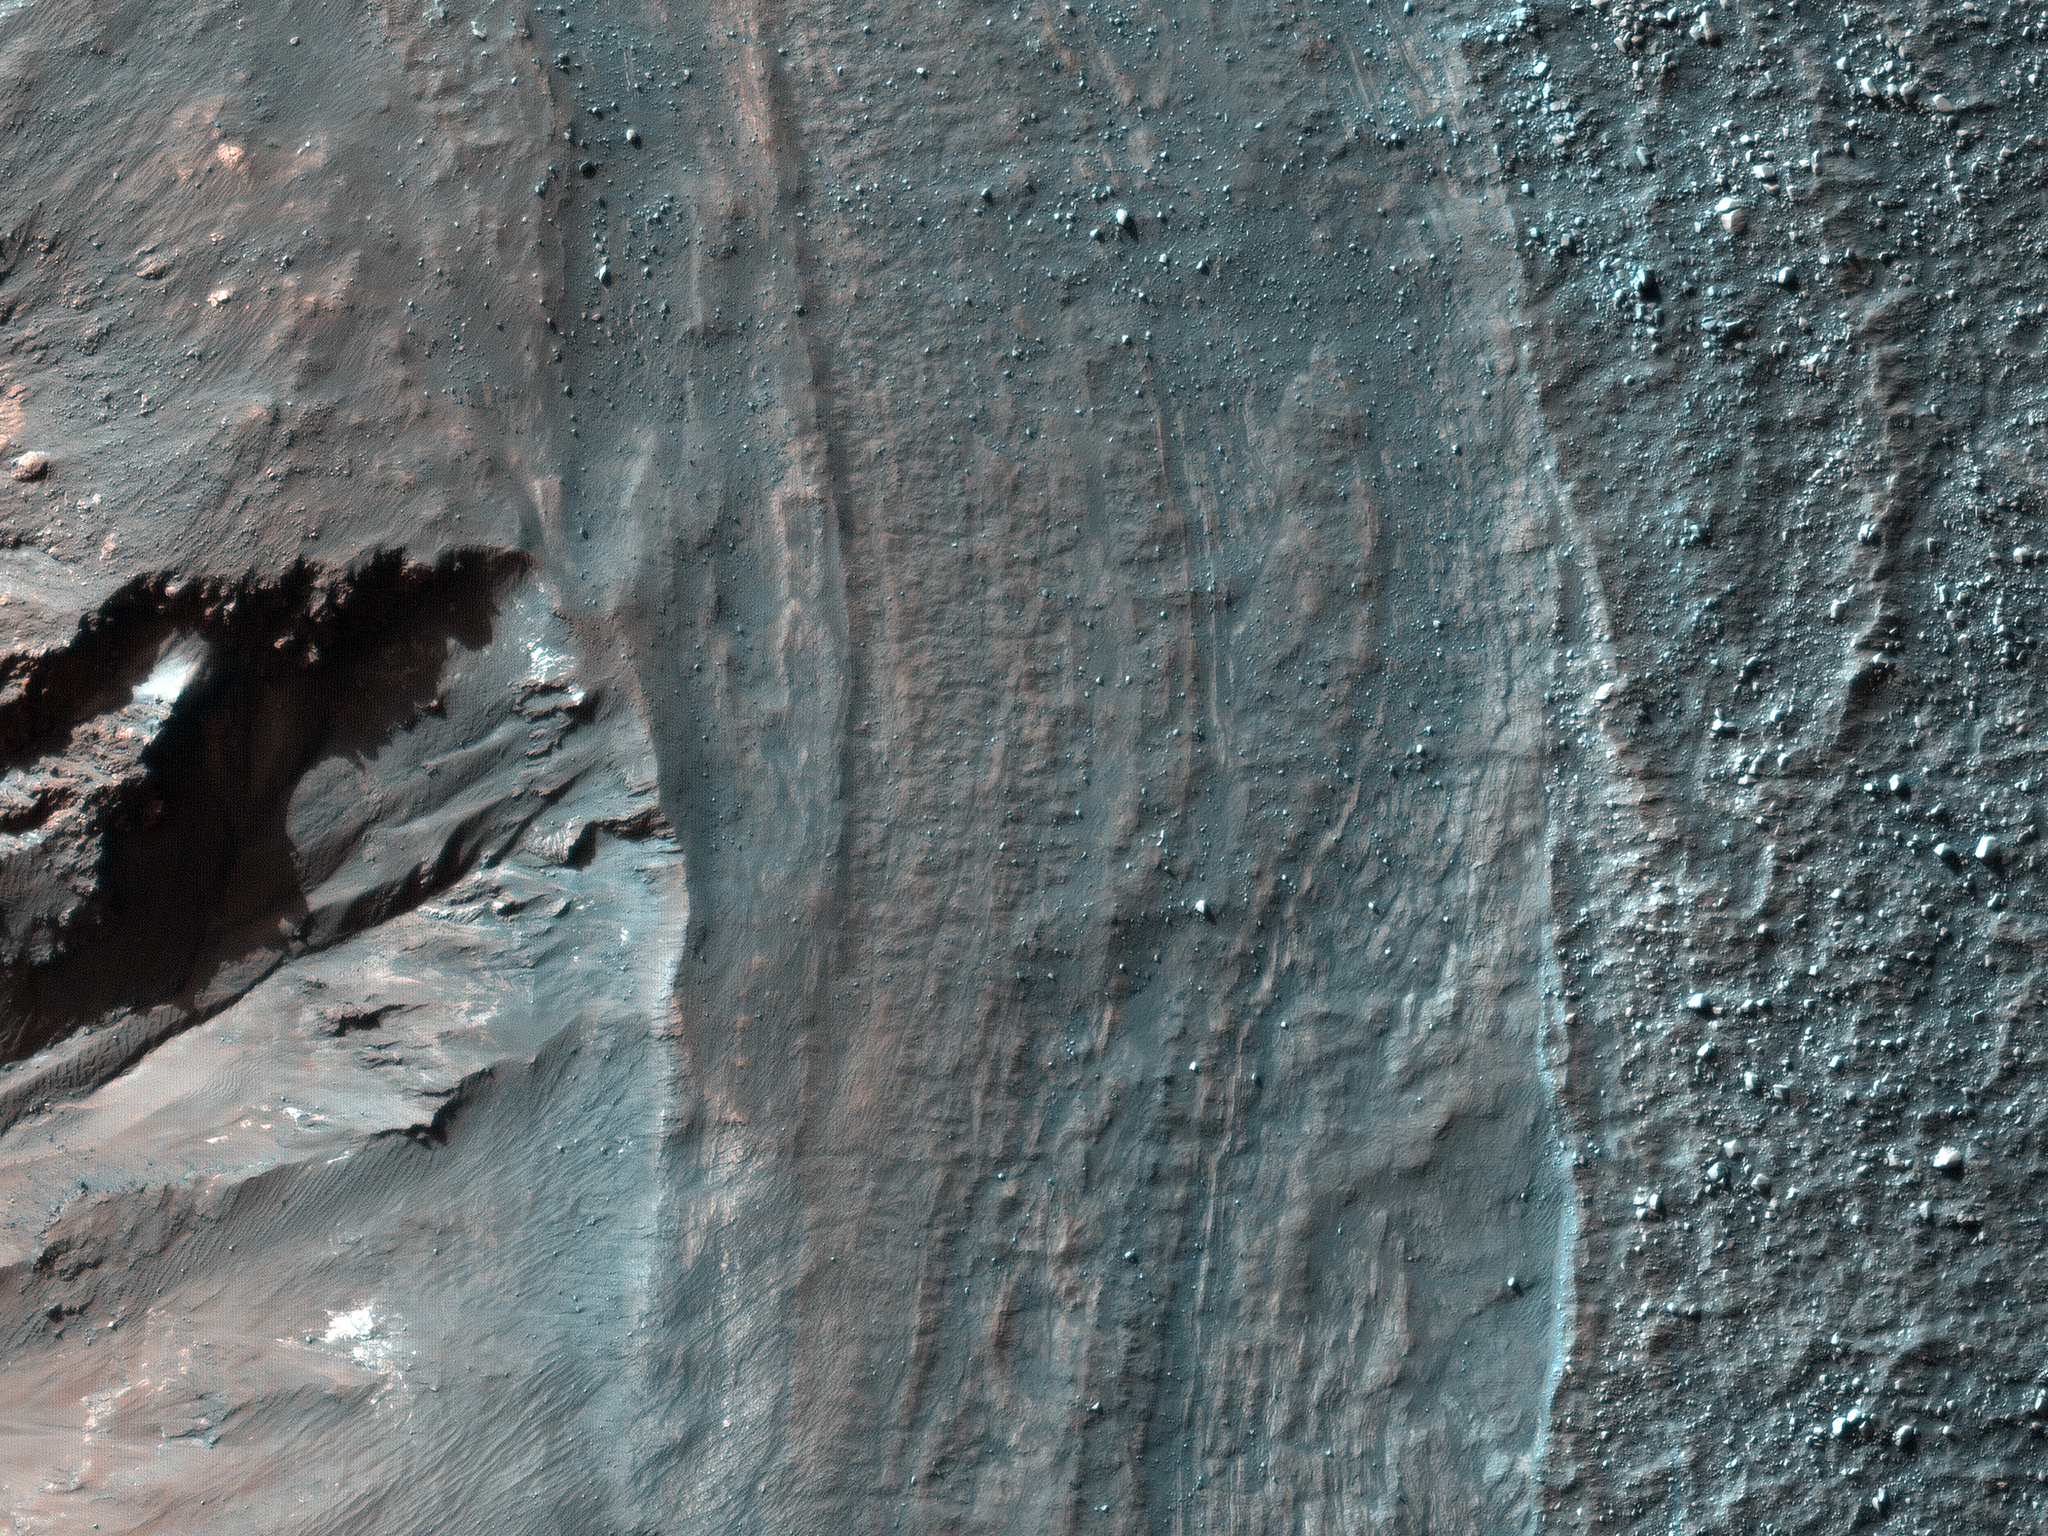 Crater Rim Layers, Rubble, And Gullies (ESP